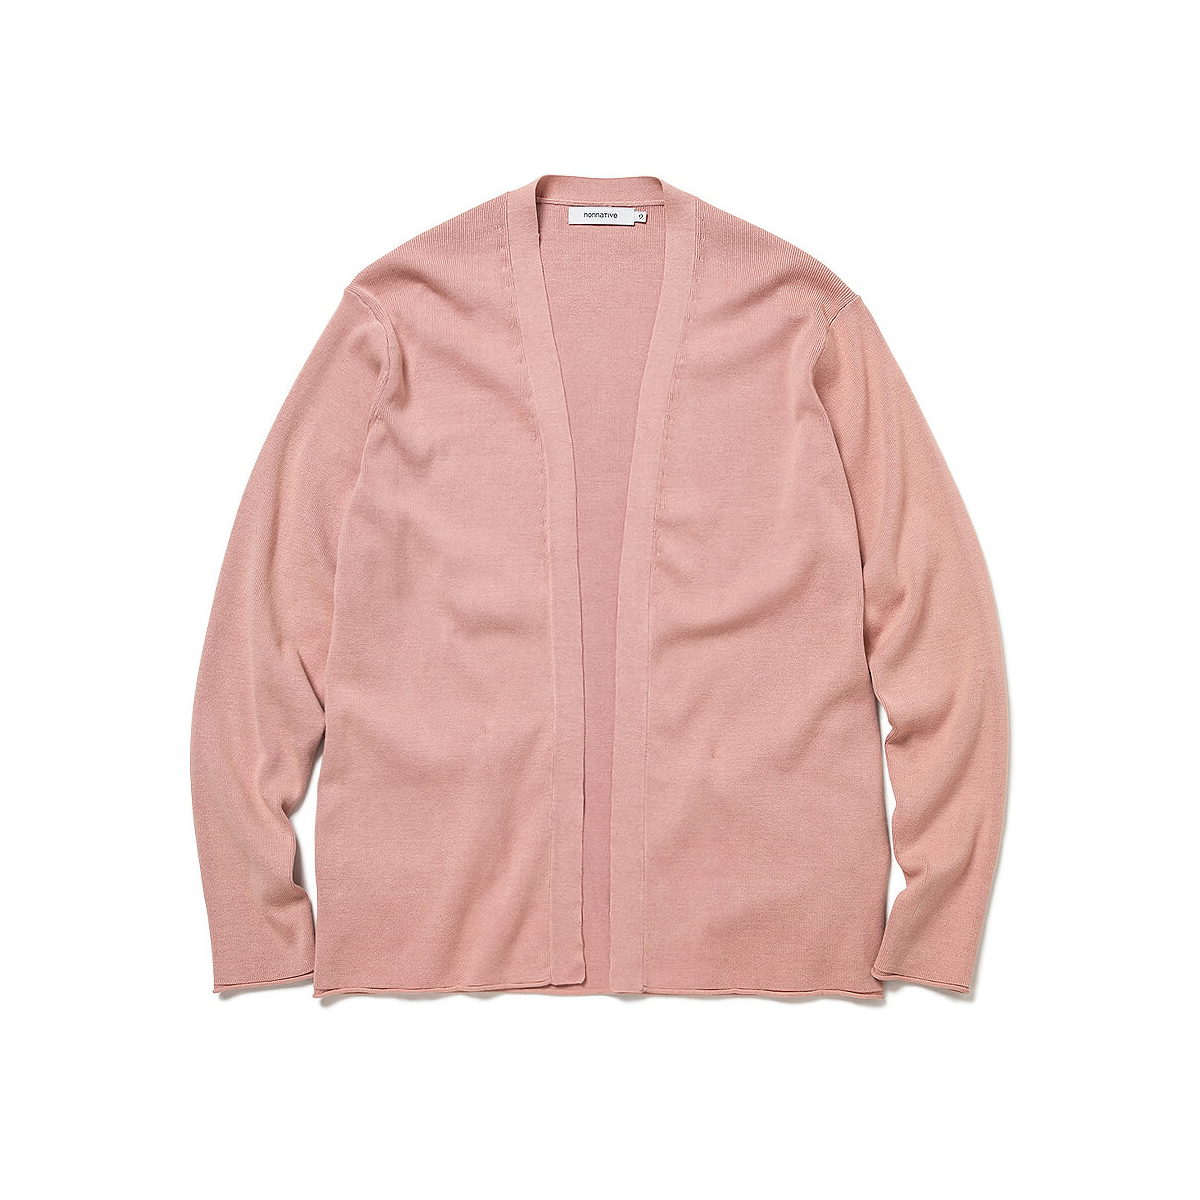 nonnative / TROOPER CARDIGAN COTTON YARN VW (Pink)正面